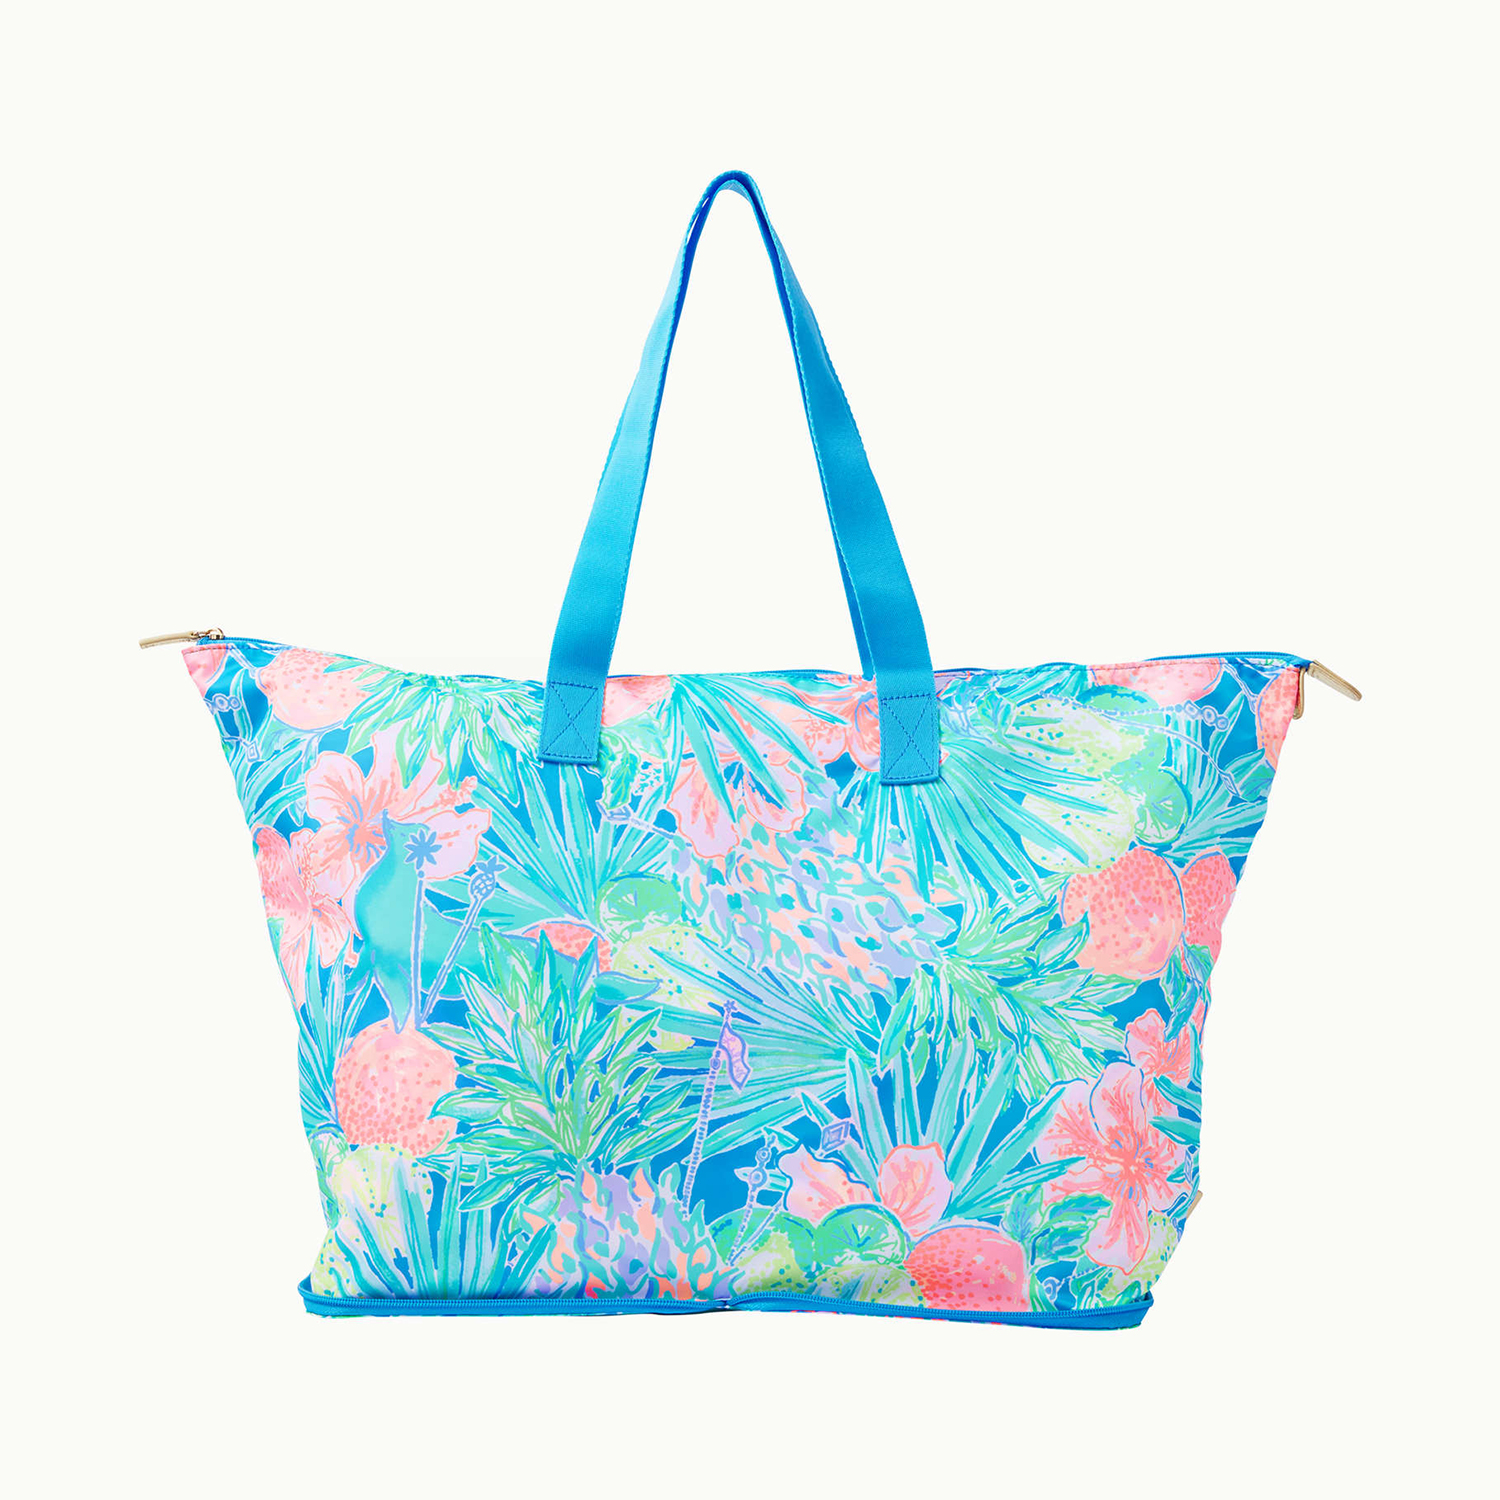 Getaway Packable Tote in Multi Swizzle In